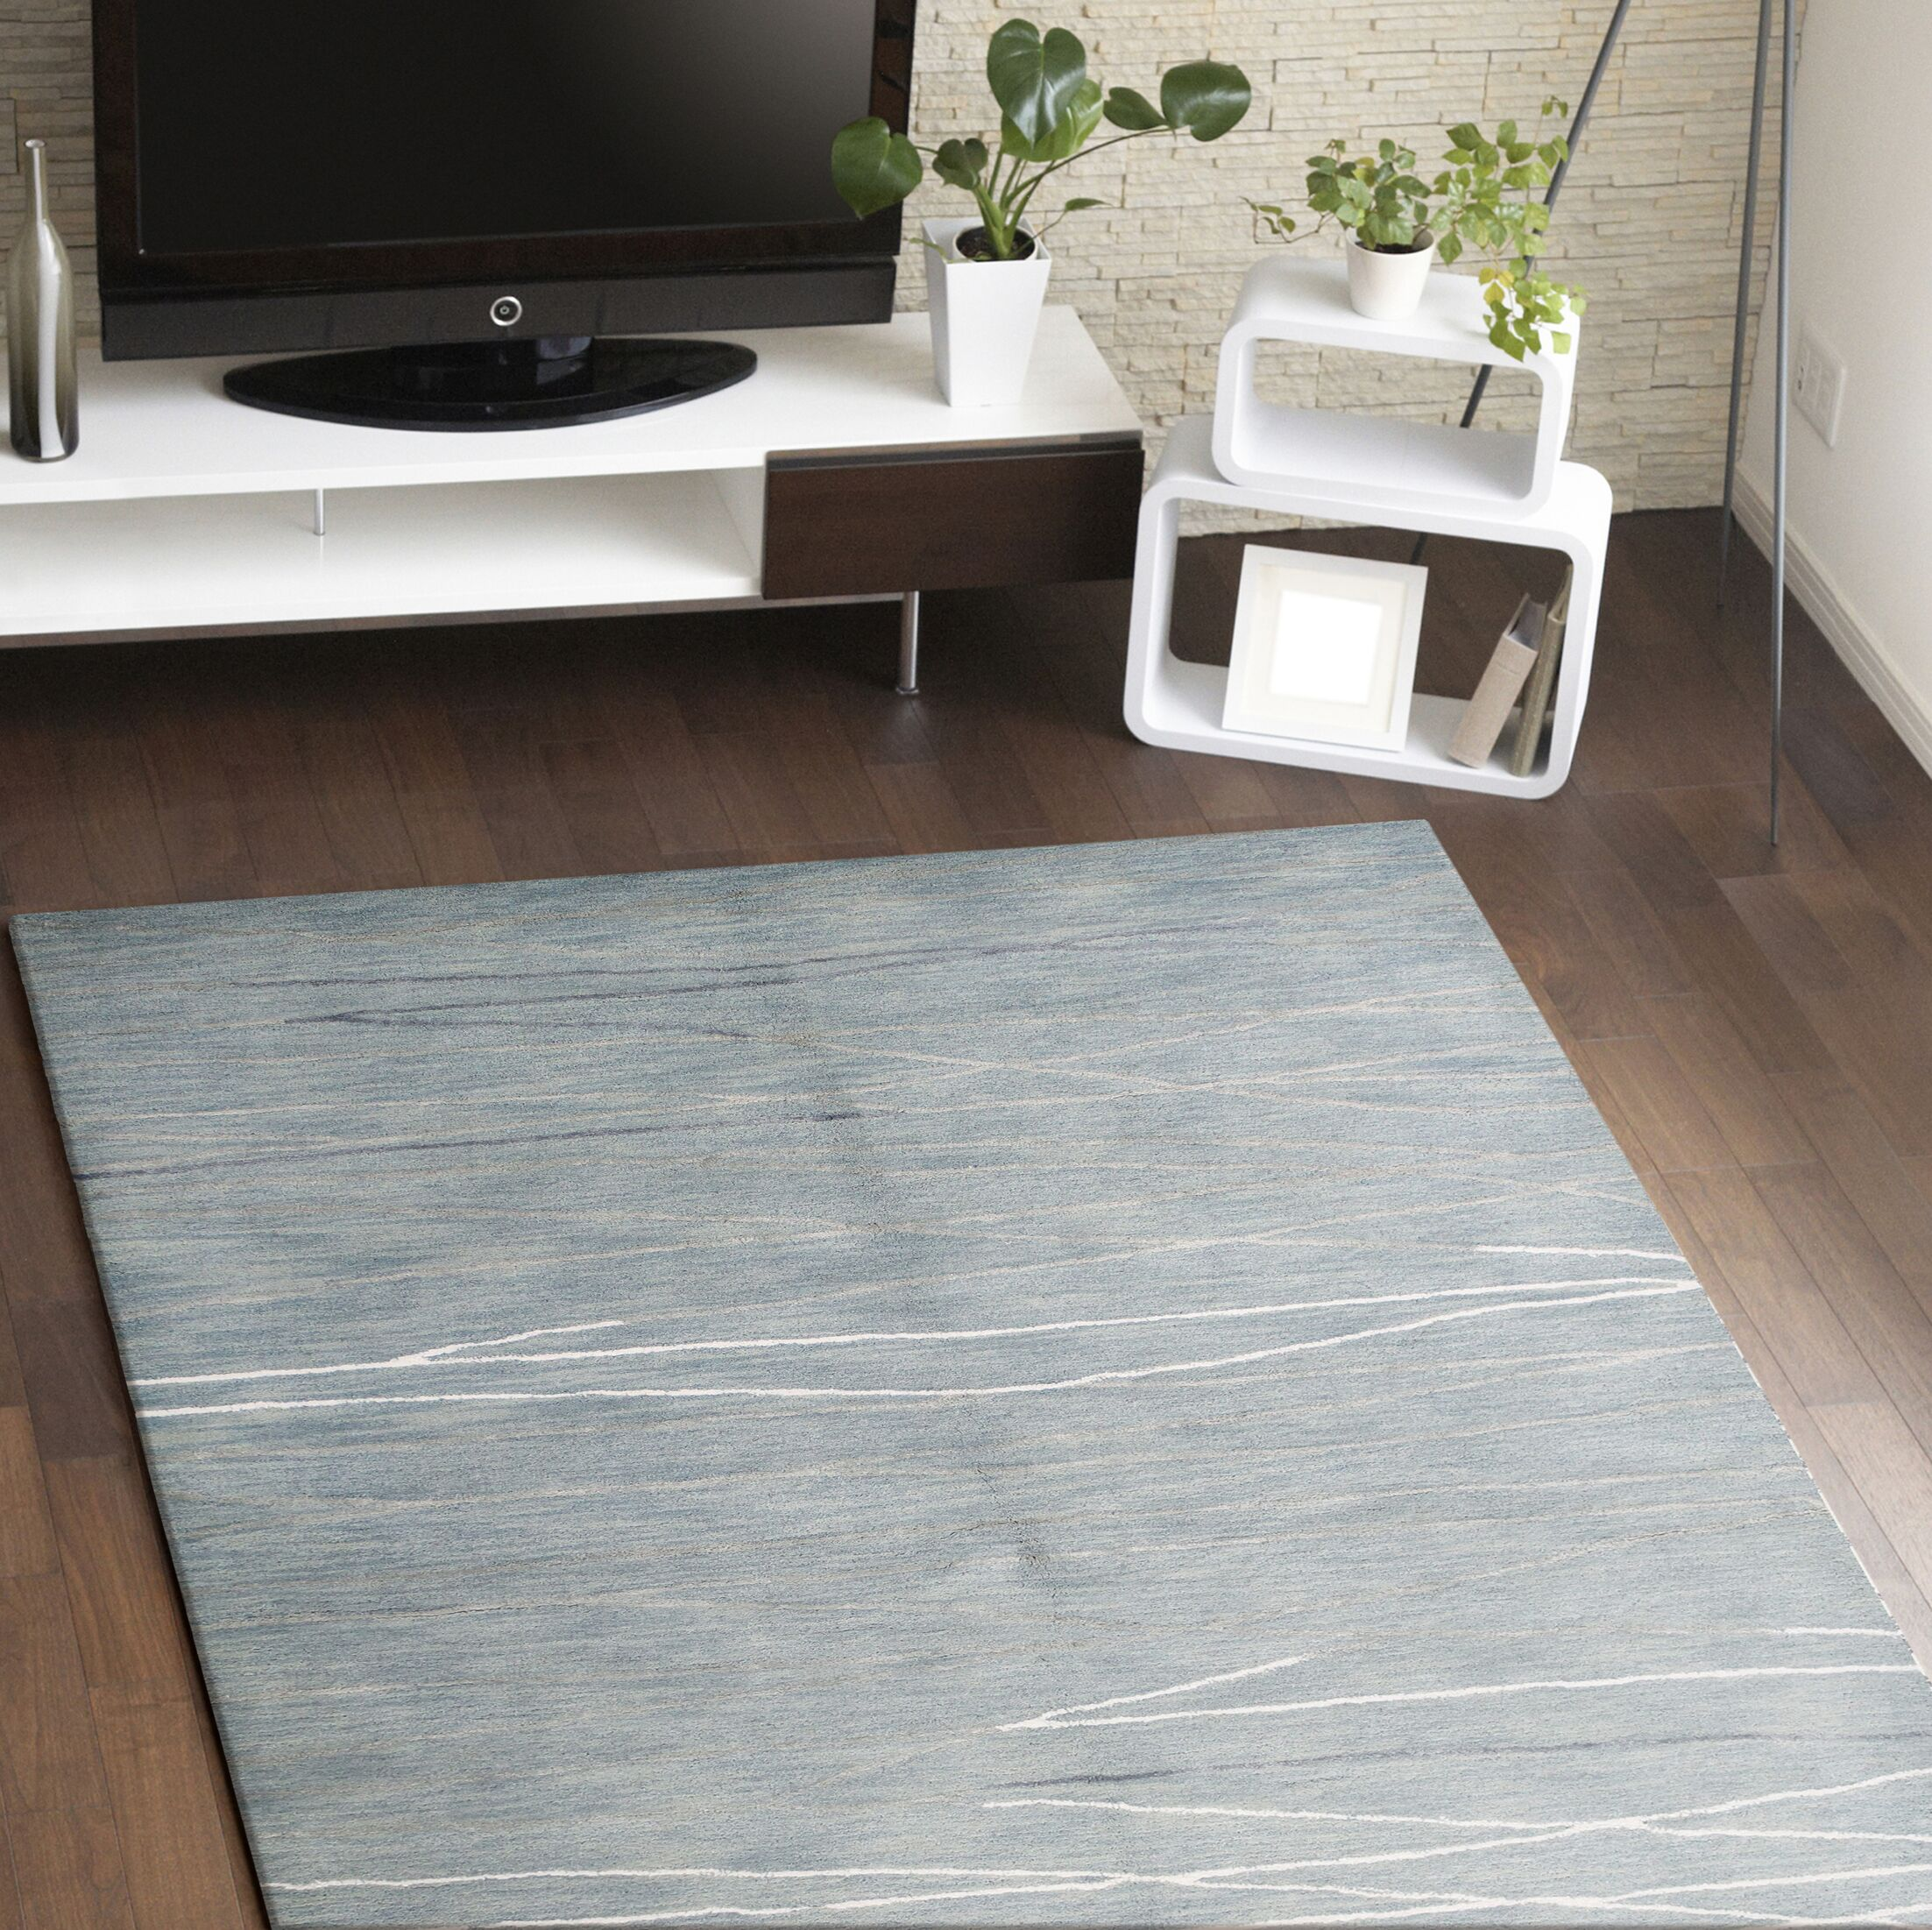 Luczak Hand-Tufted Light Blue Area Rug Rug Size: Rectangle 3'9